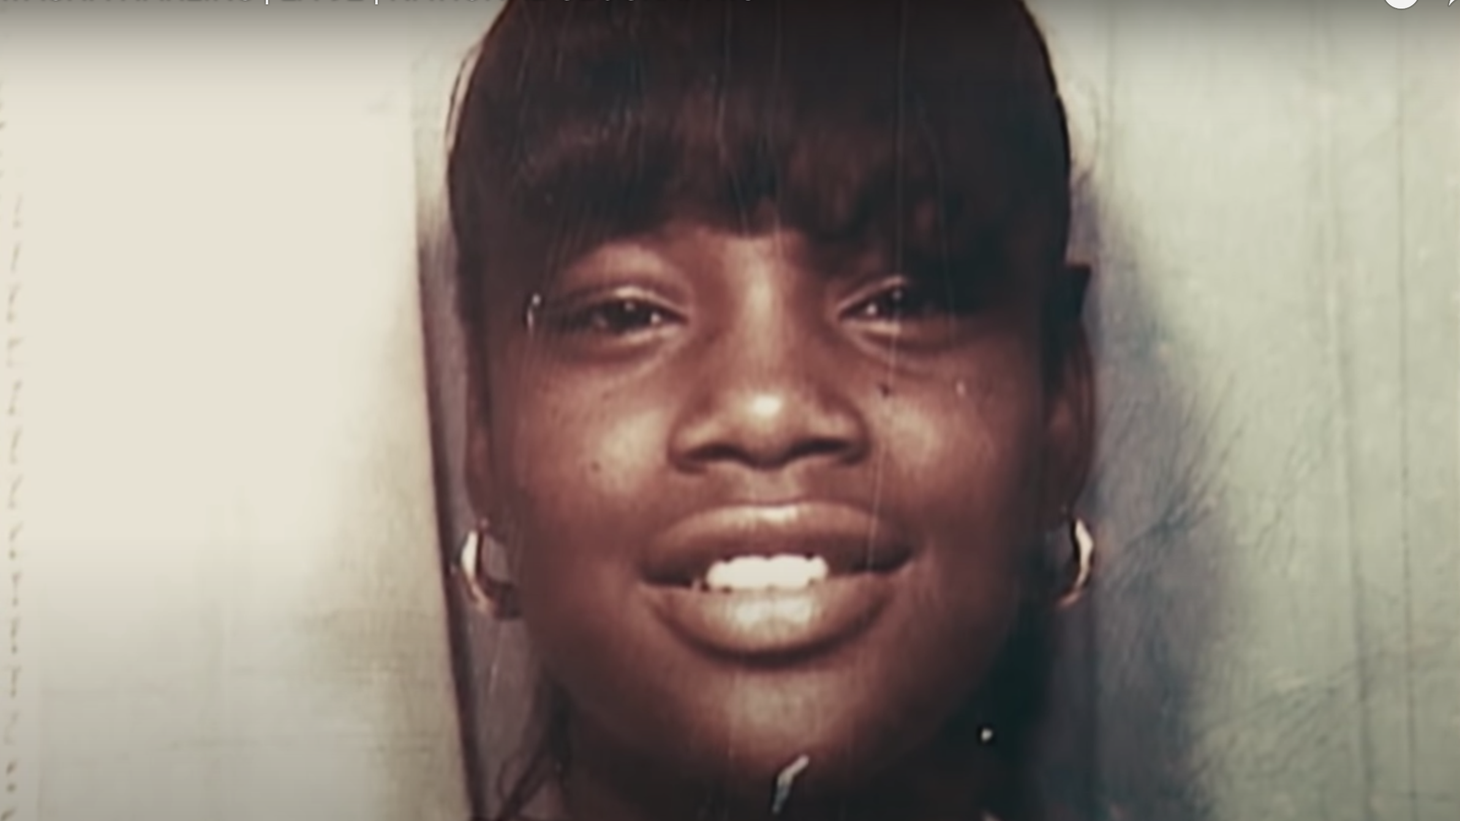 In 1991, 15 -year-old Latasha Harlins was shot and killed by a convenience store owner named Soon Ja Du.